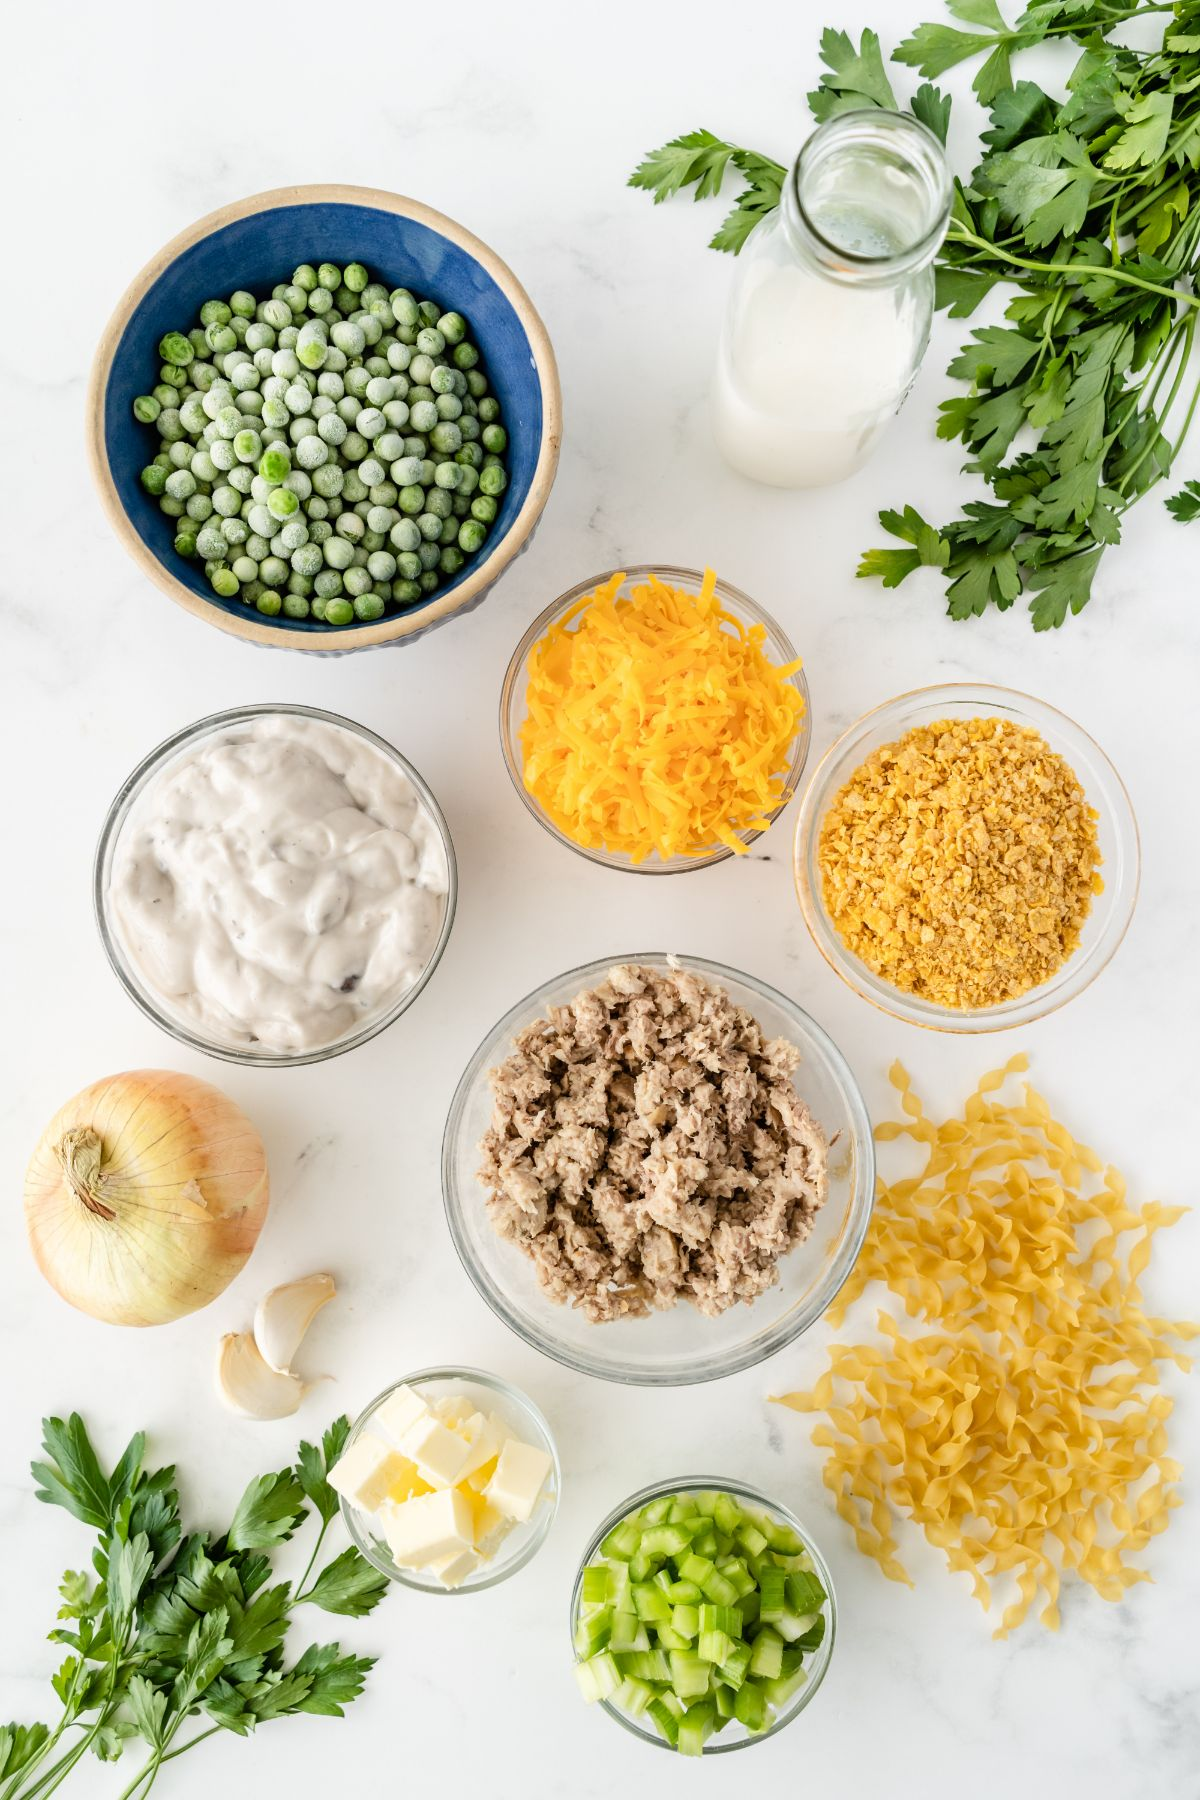 Ingredients needed to make a Tuna Noodle casserole in individual cups, saucers, and bowls.